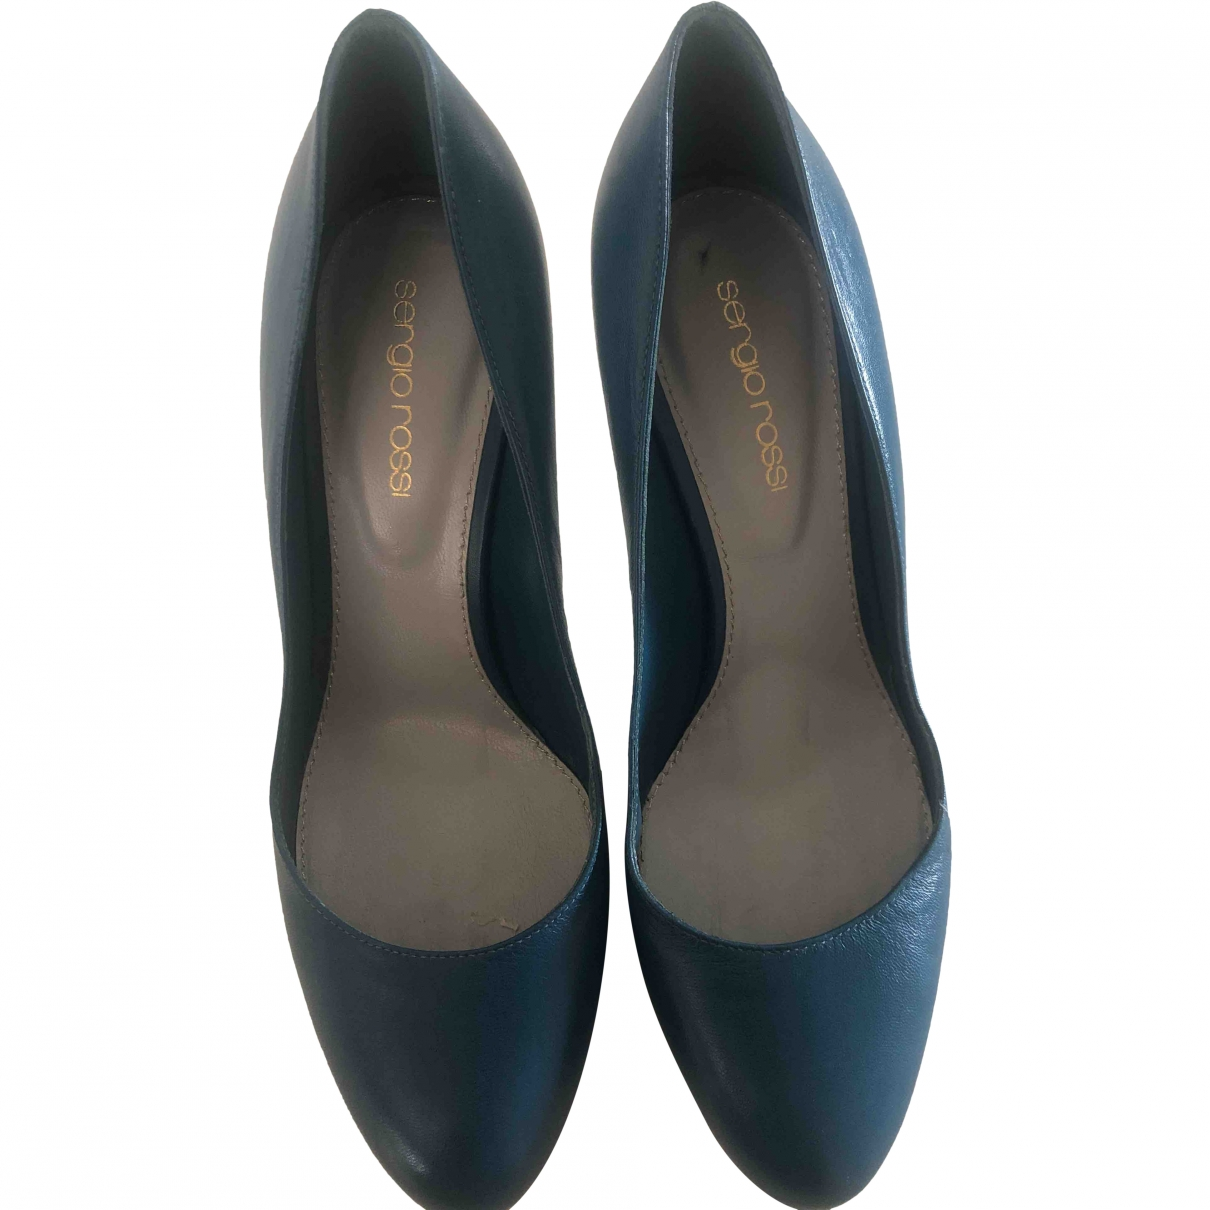 Sergio Rossi \N Blue Leather Heels for Women 37.5 EU